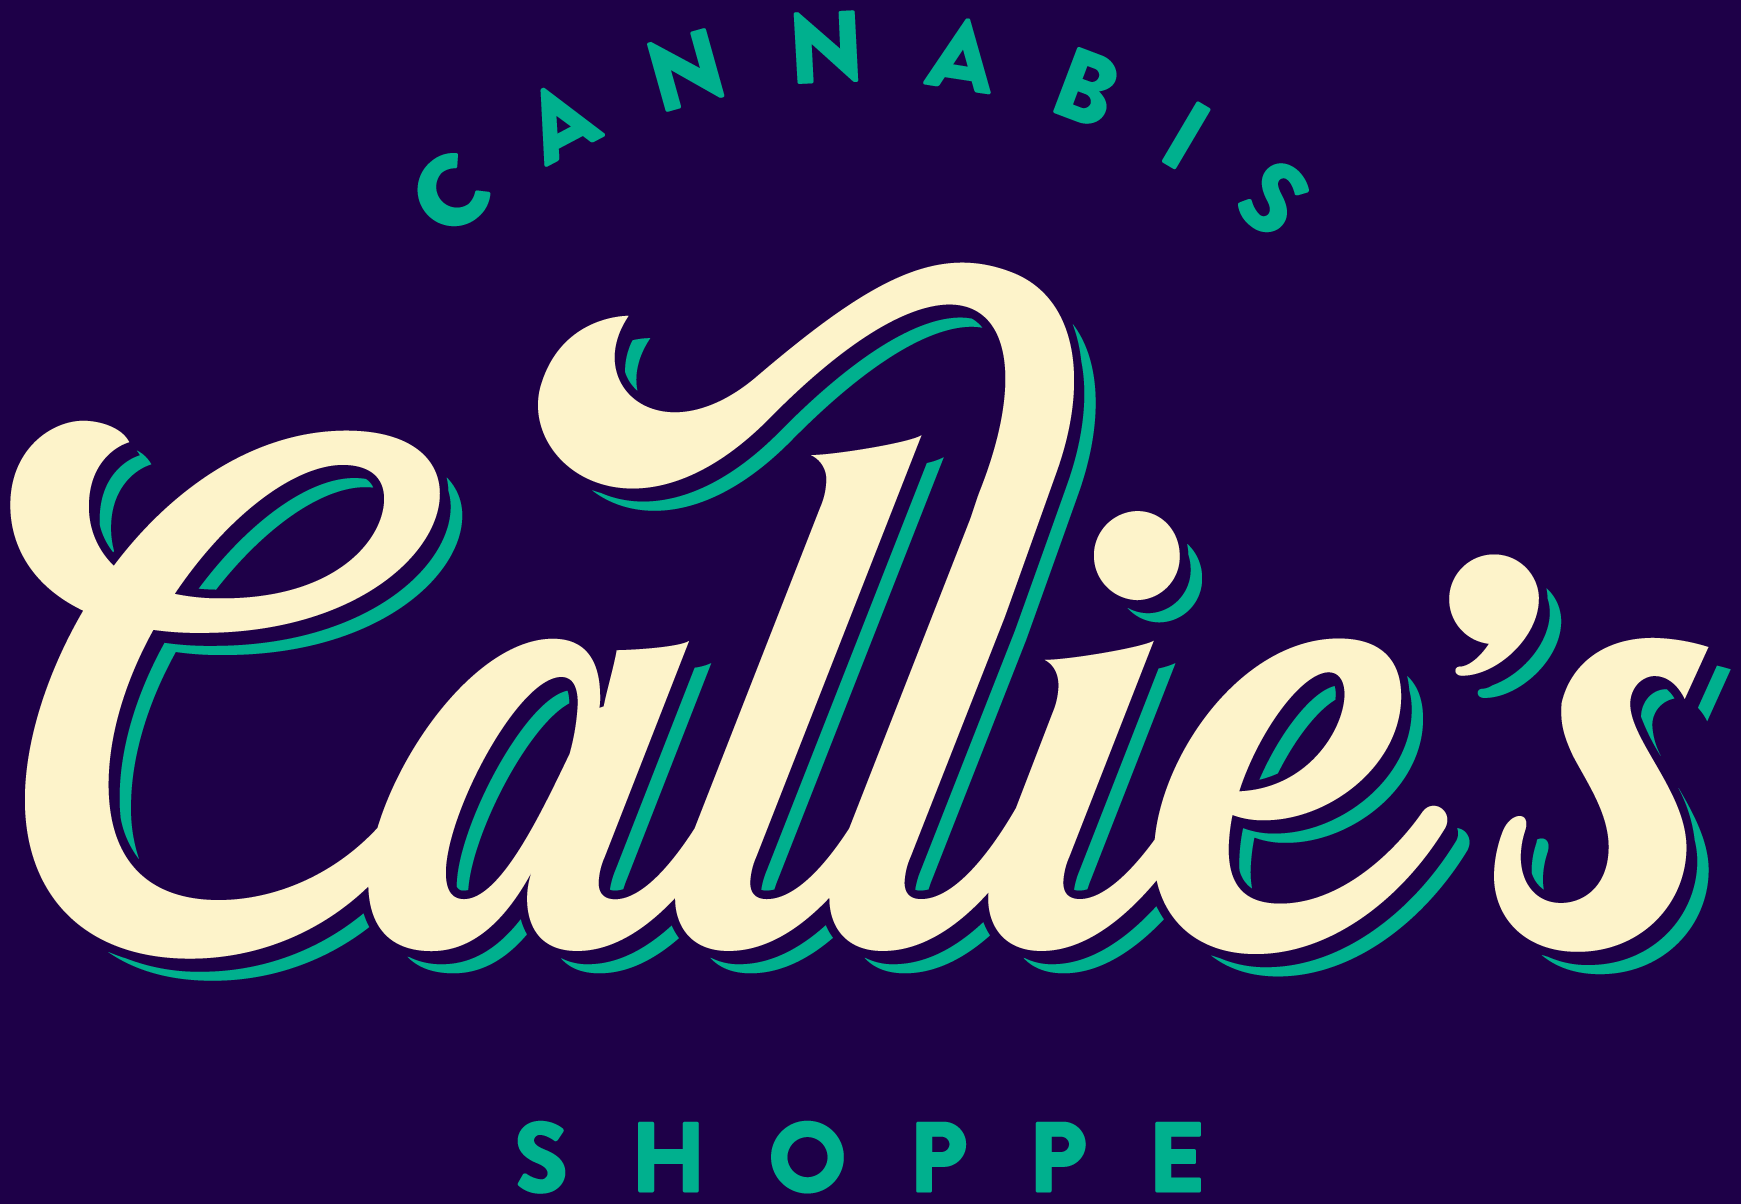 Callie's Cannabis Shoppe